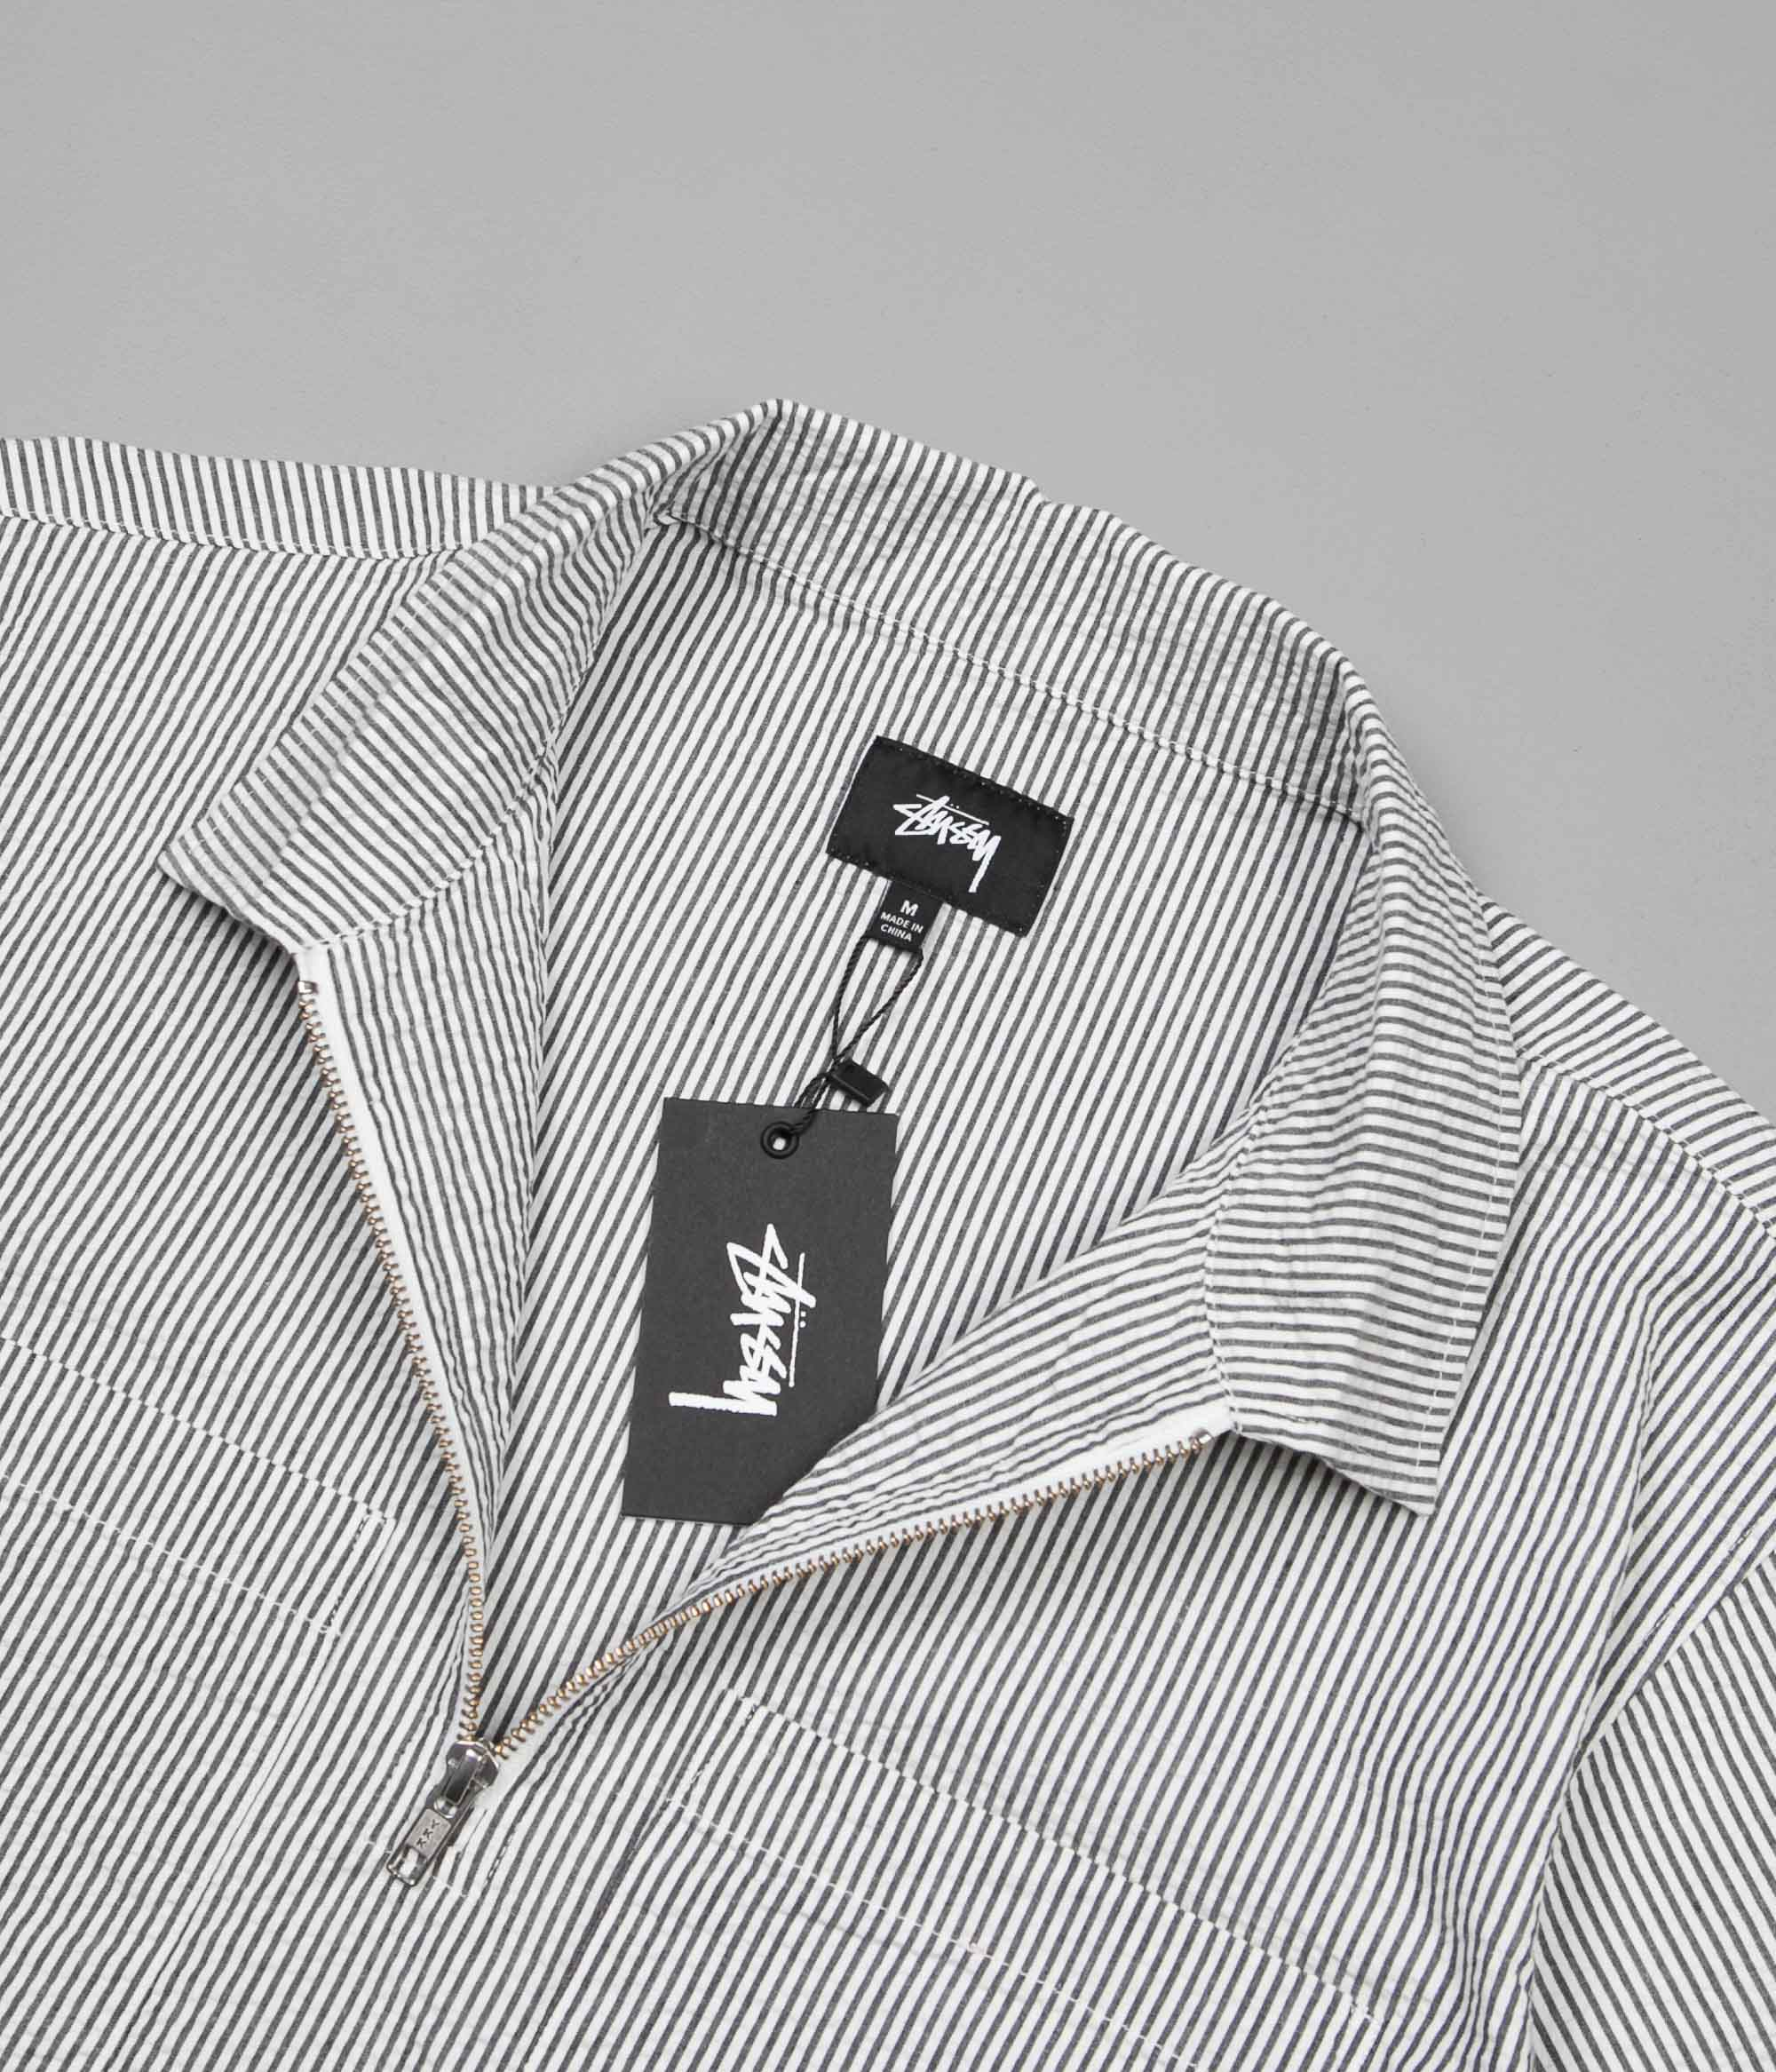 Stussy Seersucker Half-Zip Shirt - Black Stripe